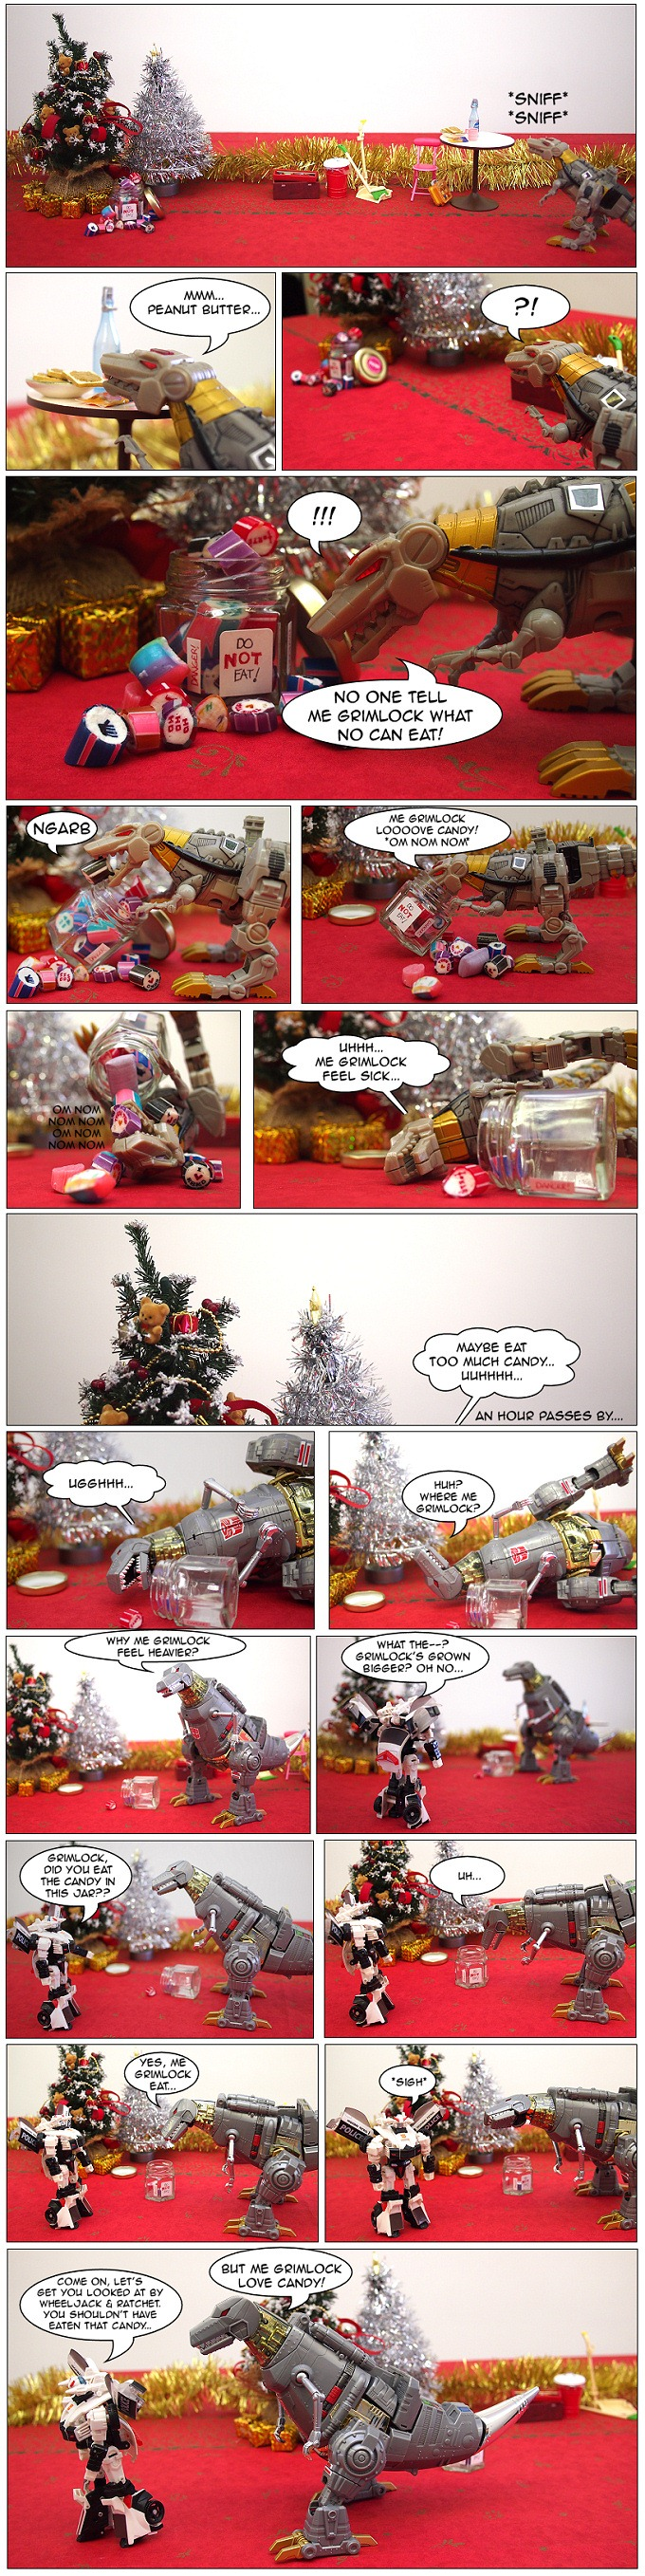 grimlock is a growing dinobot - my toys are alive 13 transformers fan comics featuring dinobot grimlock candy and prowl